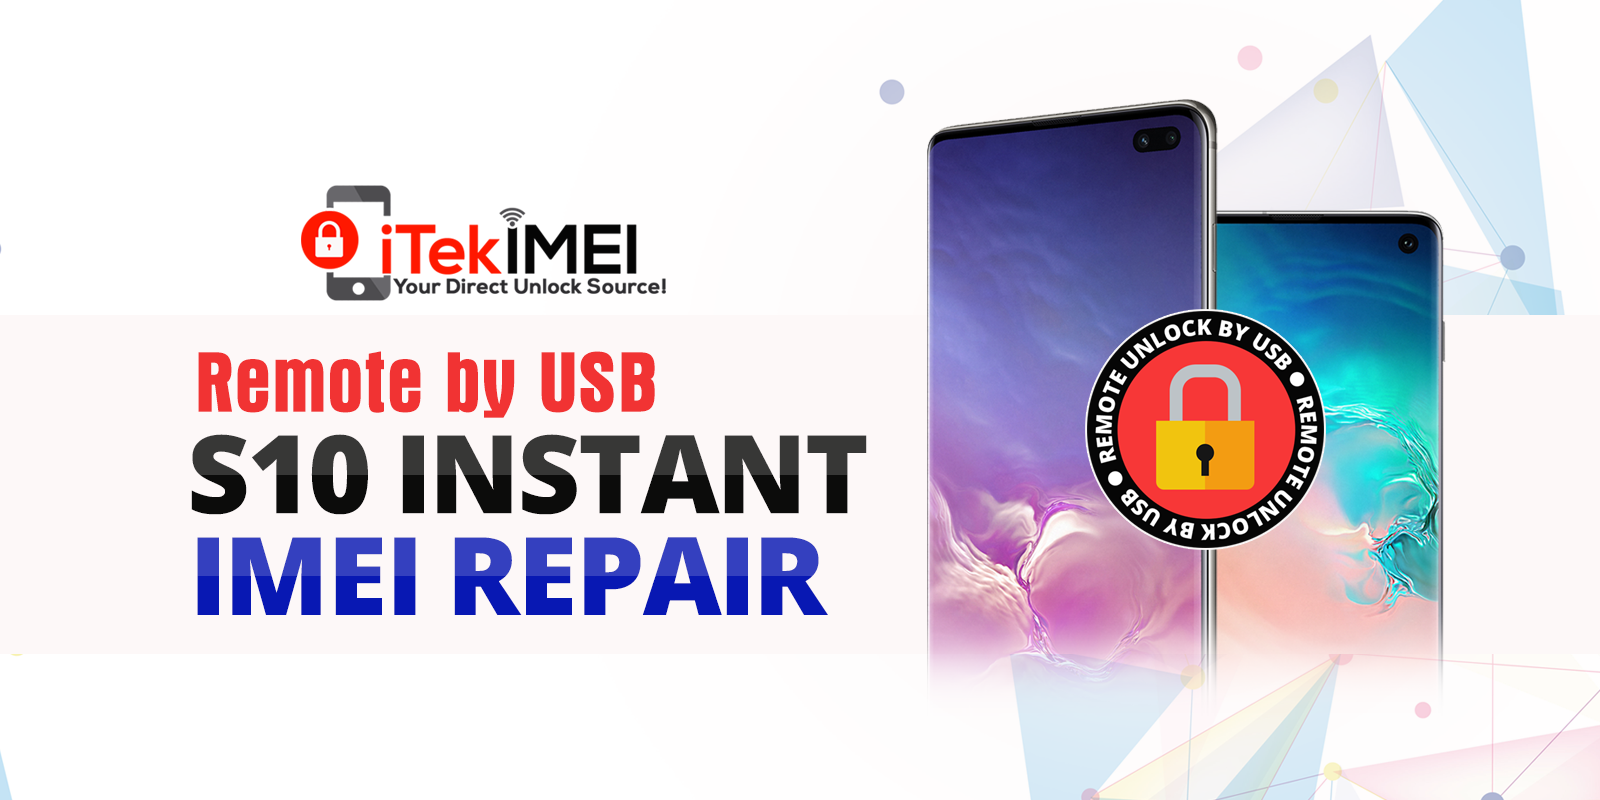 iTek IMEI - USB Based Unlocks, Google Lock Removal, Sprint